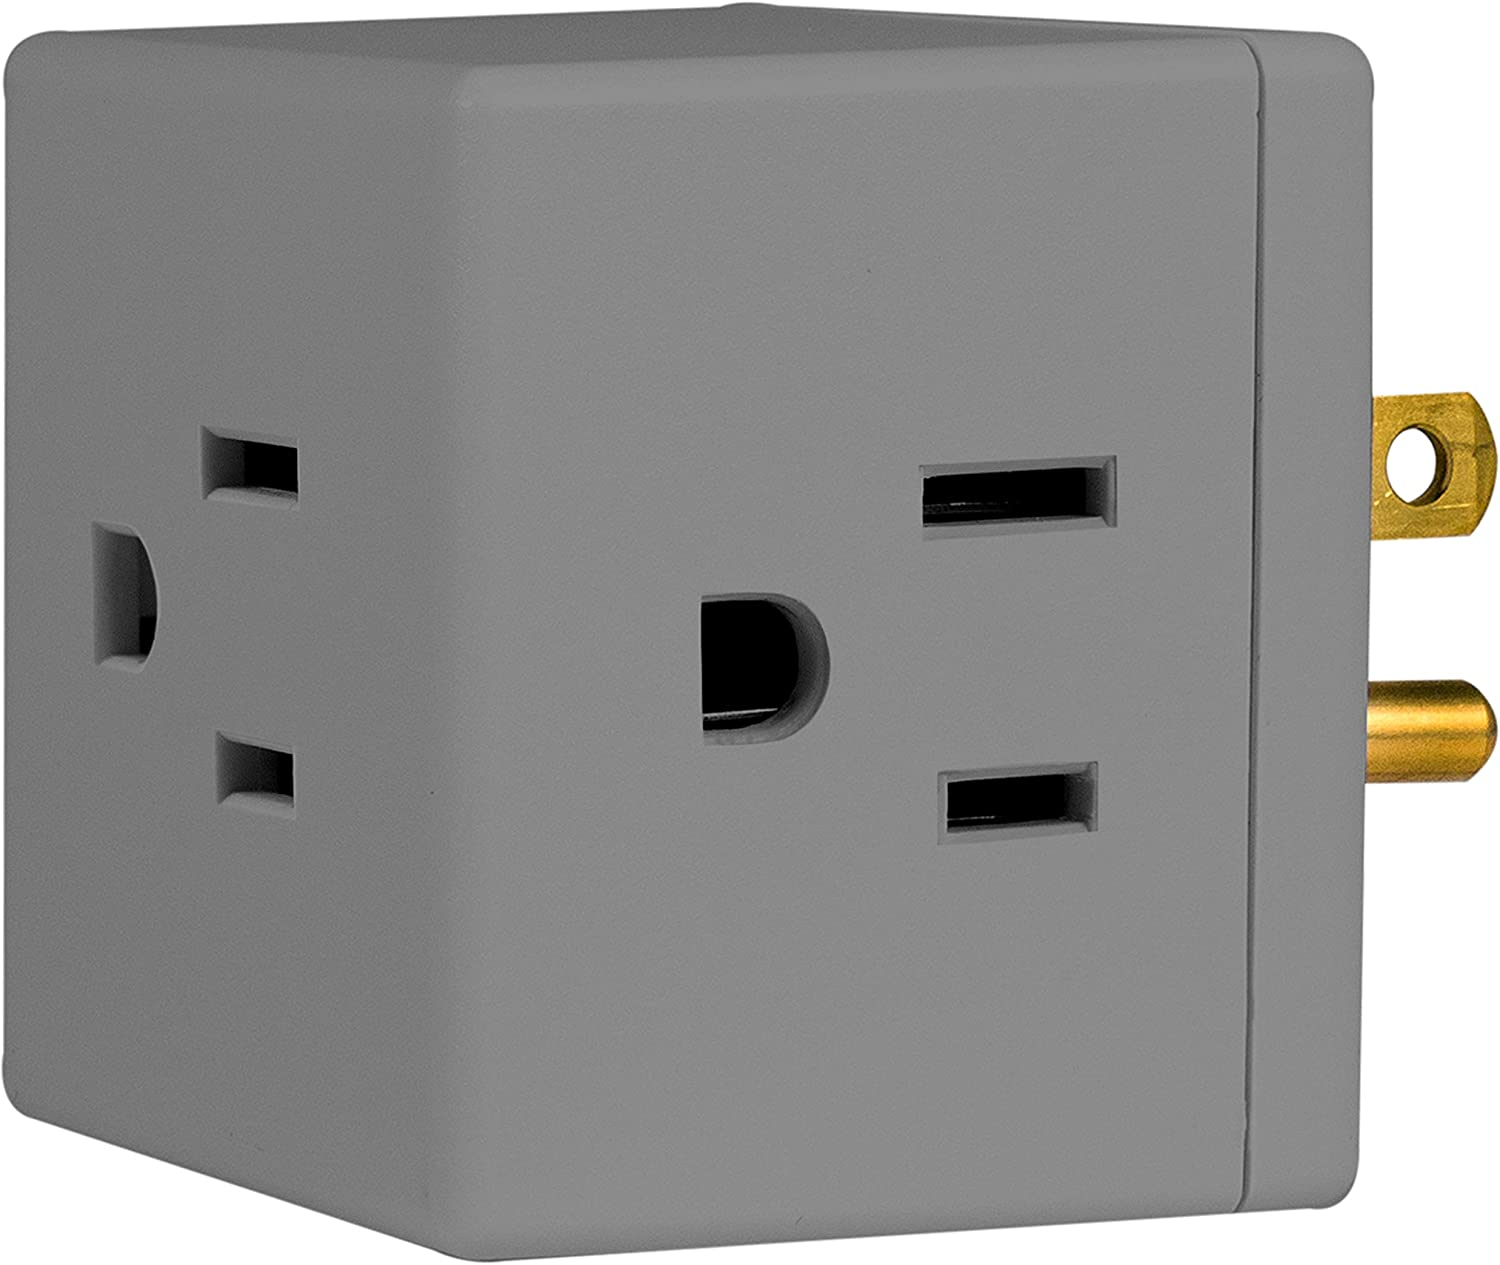 GE Outlet Wall Tap, 3-Prong, Extra-Wide Space Adapter, Easy Access Design, Gray, 47493, 1 Pack